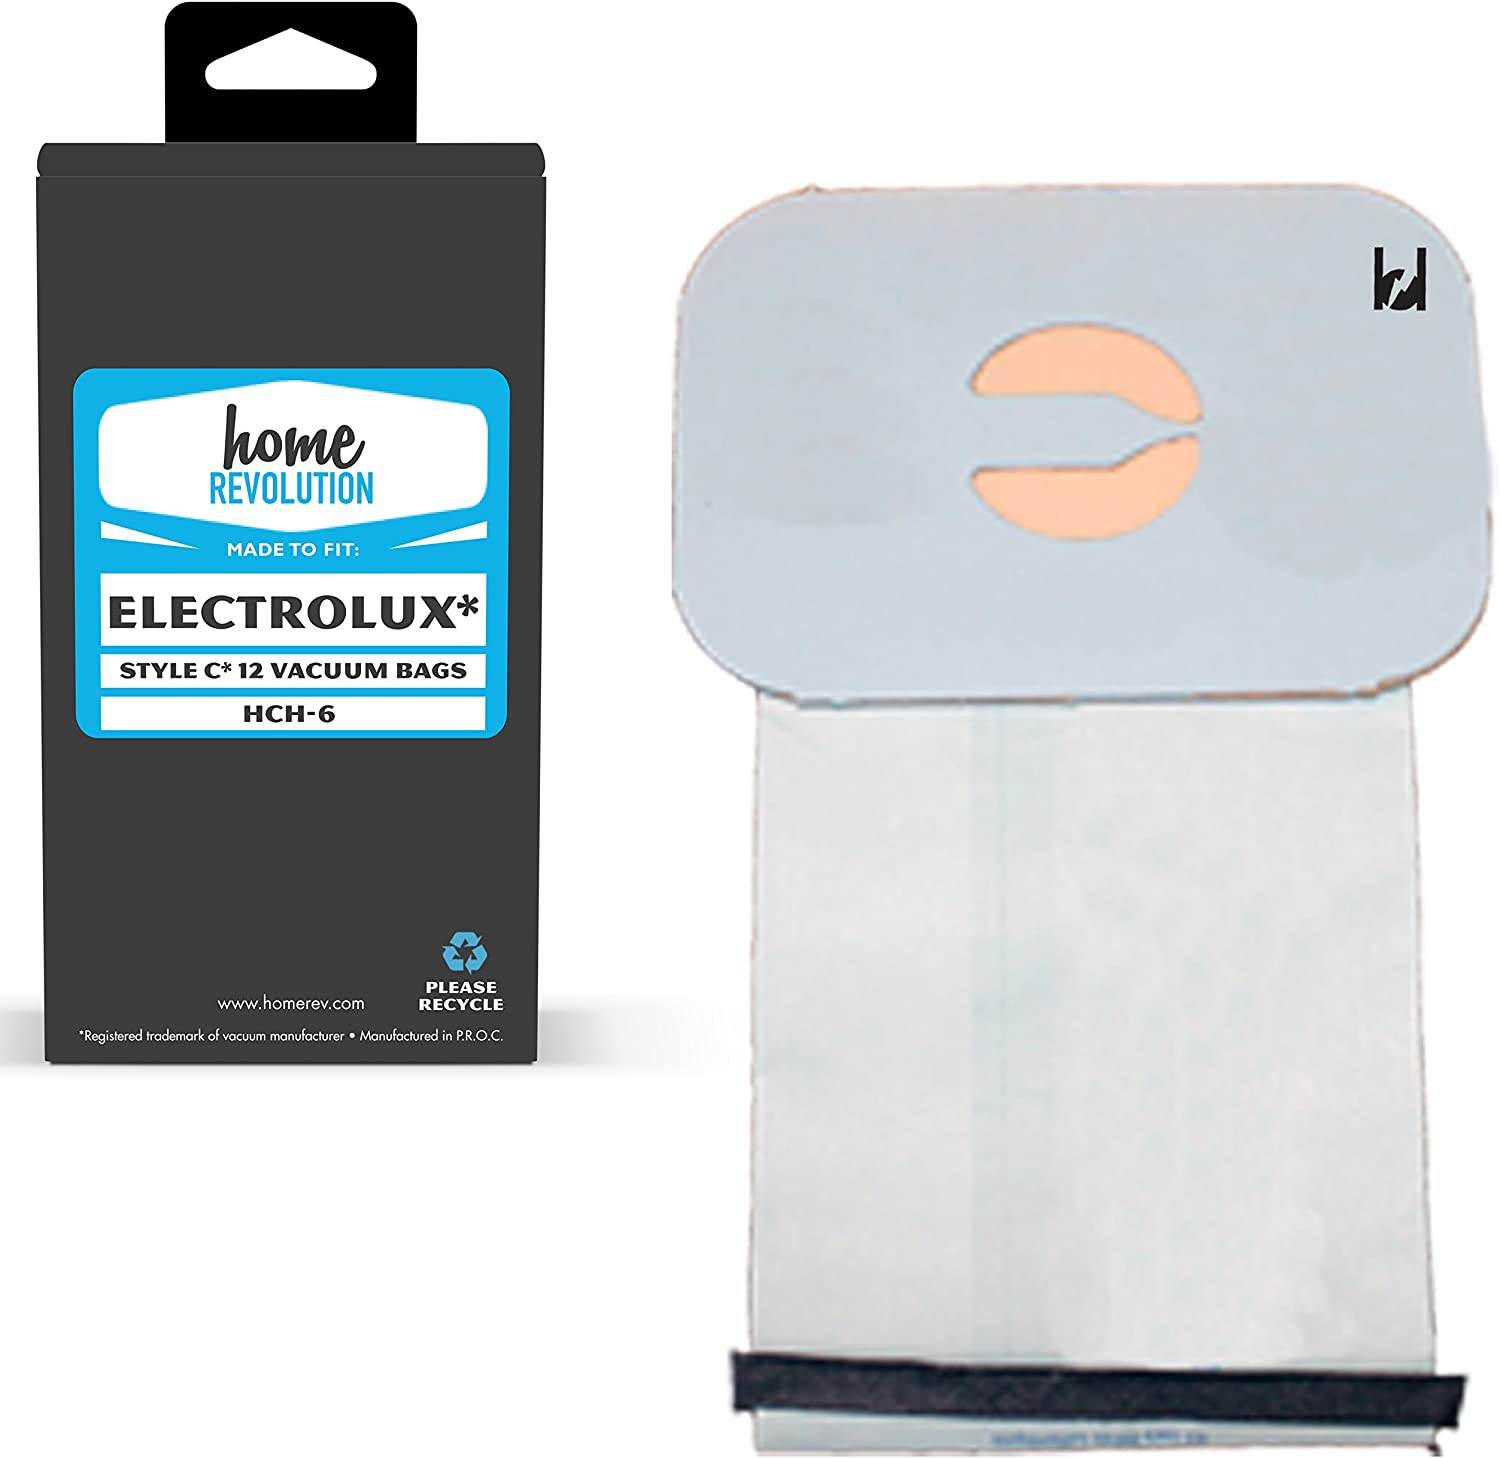 Home Revolution Replacement Vacuum Bags, Fits Electrolux Tank Style C Vacuums and Perfect C 101 Vacuum Models and Part HCH-6.